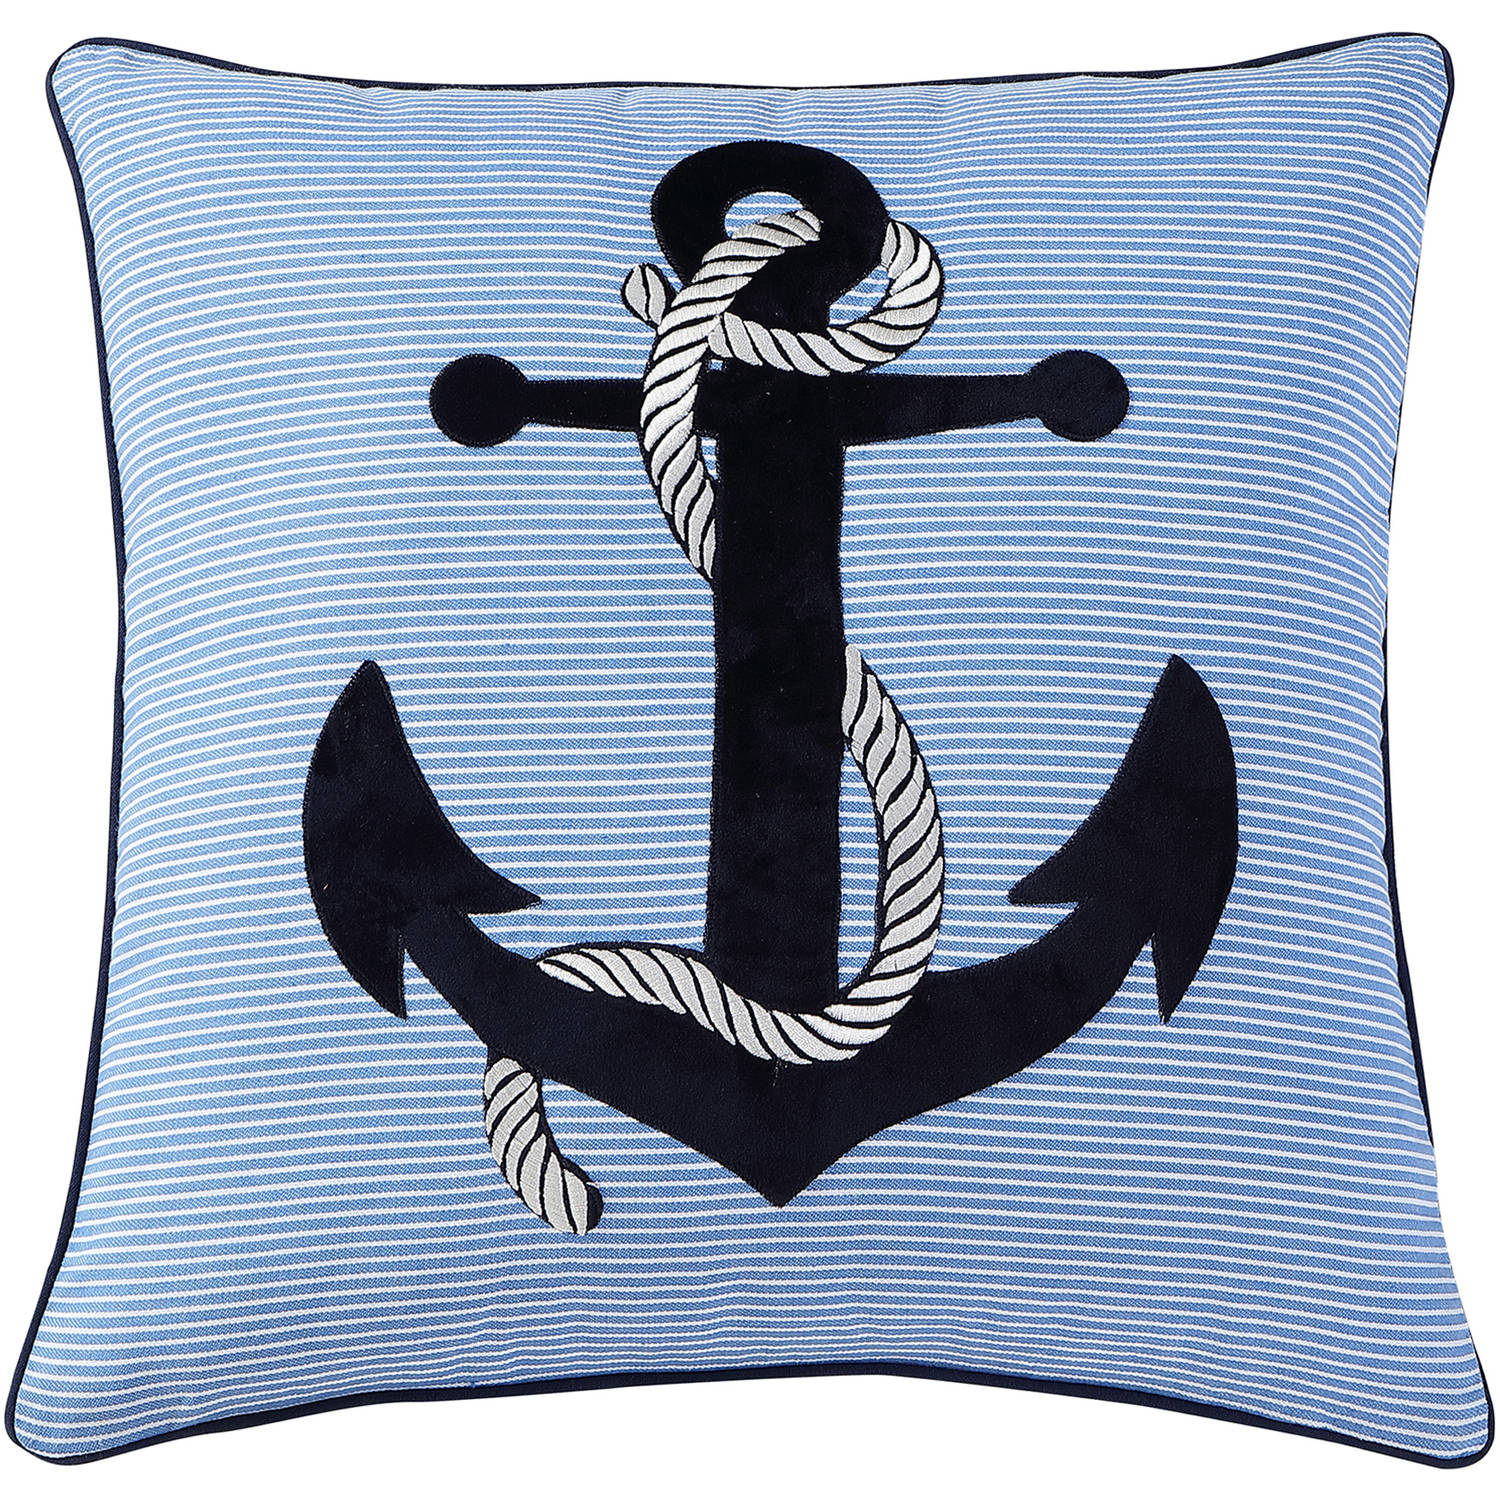 "VCNY Home Blue Embroidered Nautical Anchor 18"" x 18"" Cotton Decorative Throw Pillow"